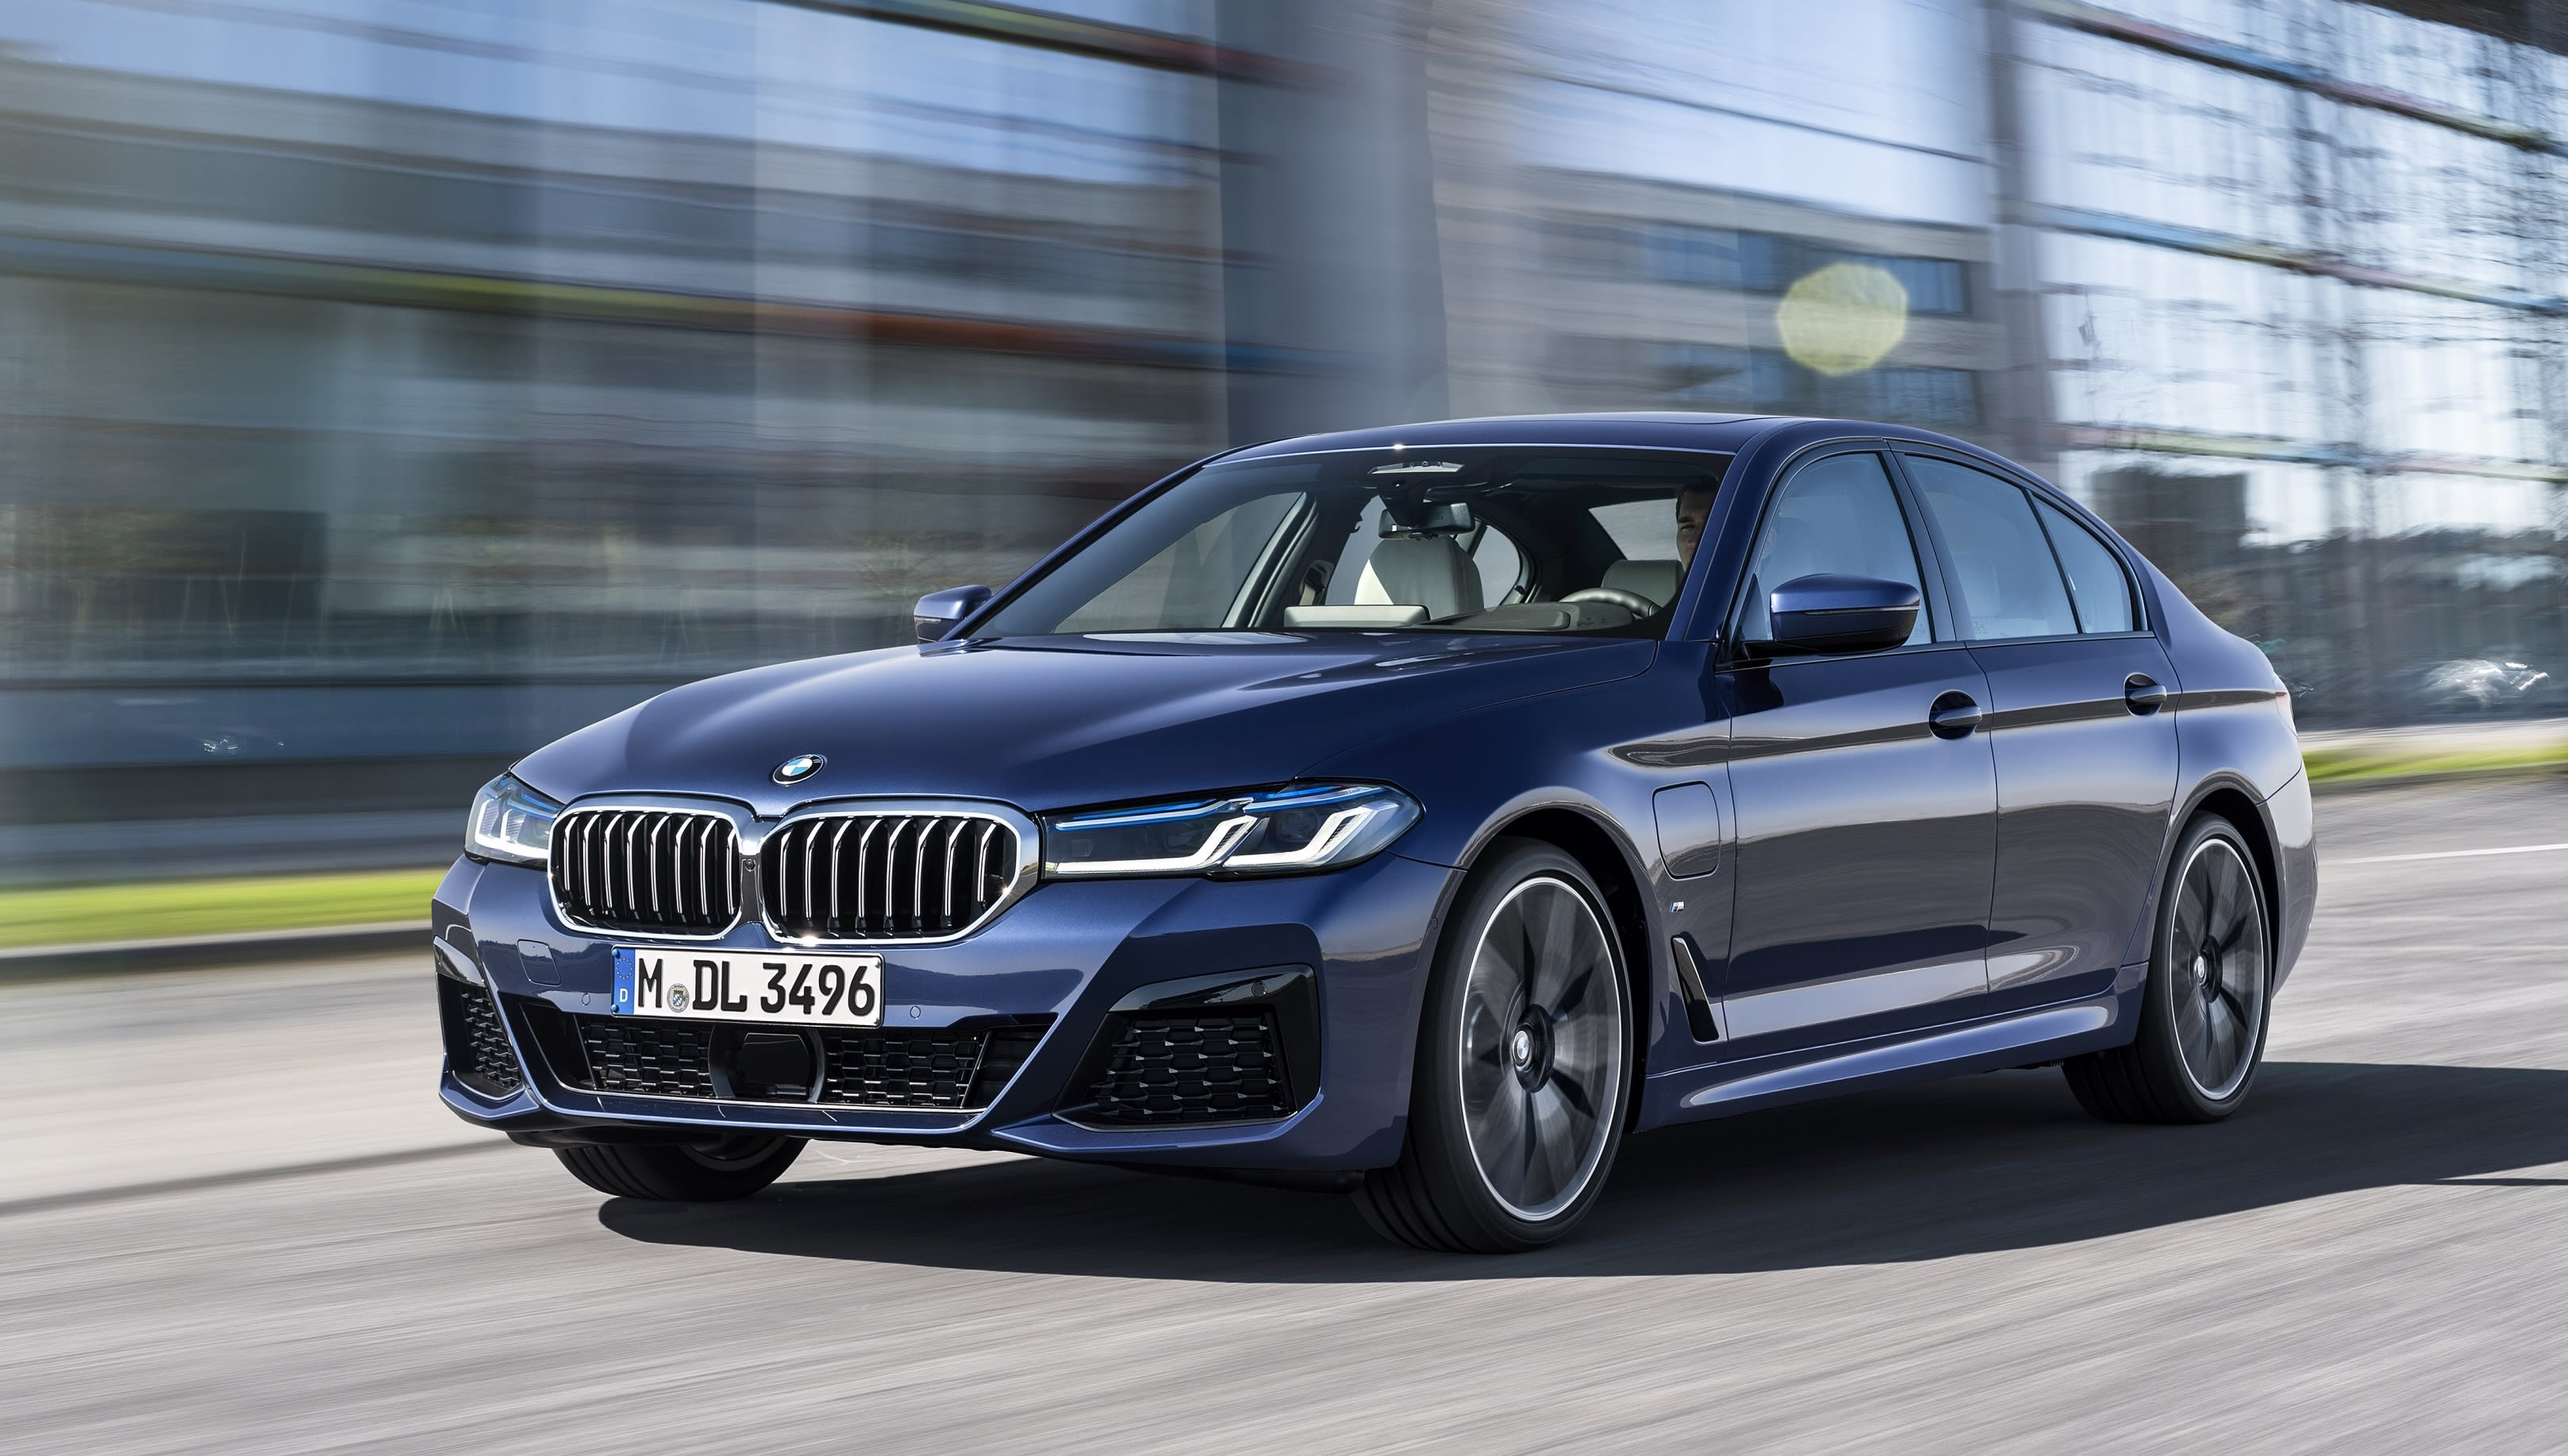 2021 Bmw 5 Series Prices Rise By Up To 6000 Caradvice